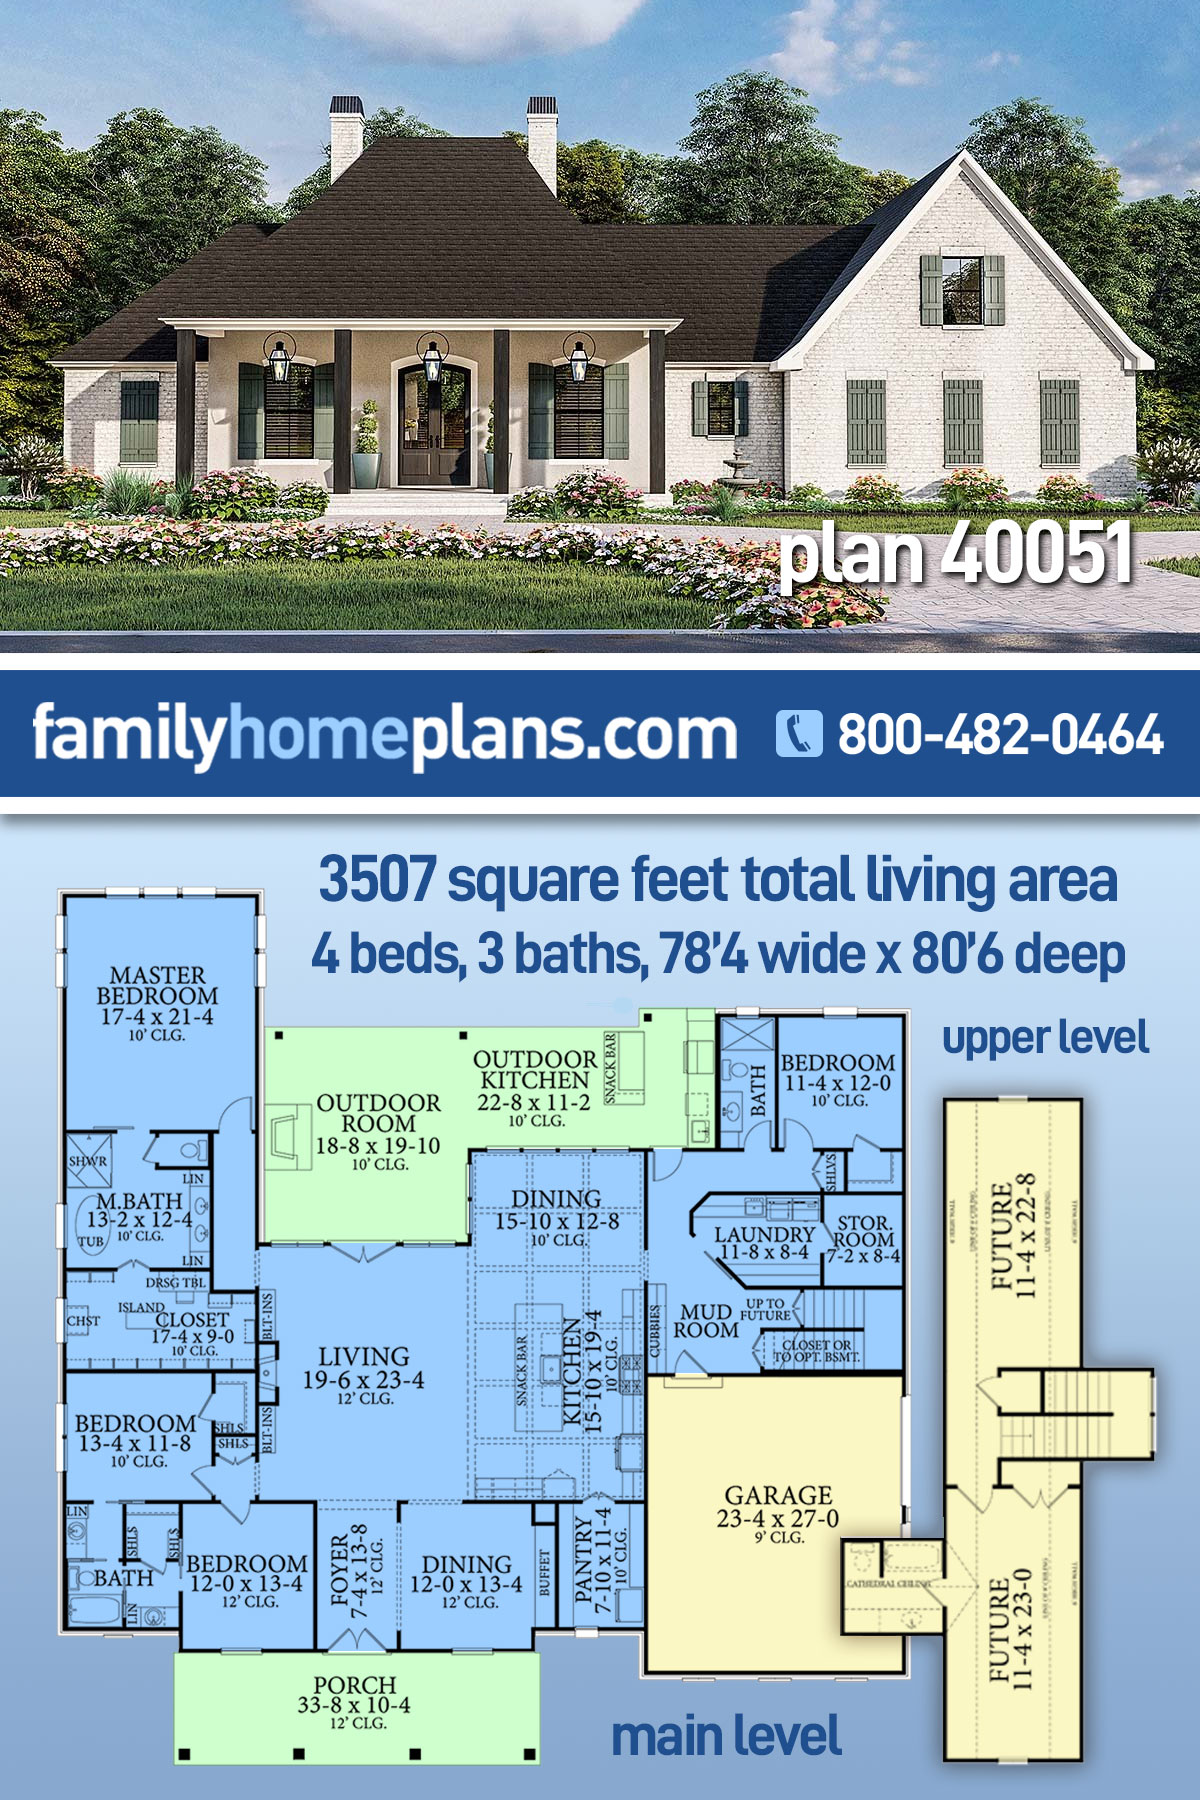 Acadian, Country, Farmhouse, French Country, Southern, Traditional House Plan 40051 with 4 Beds, 3 Baths, 2 Car Garage